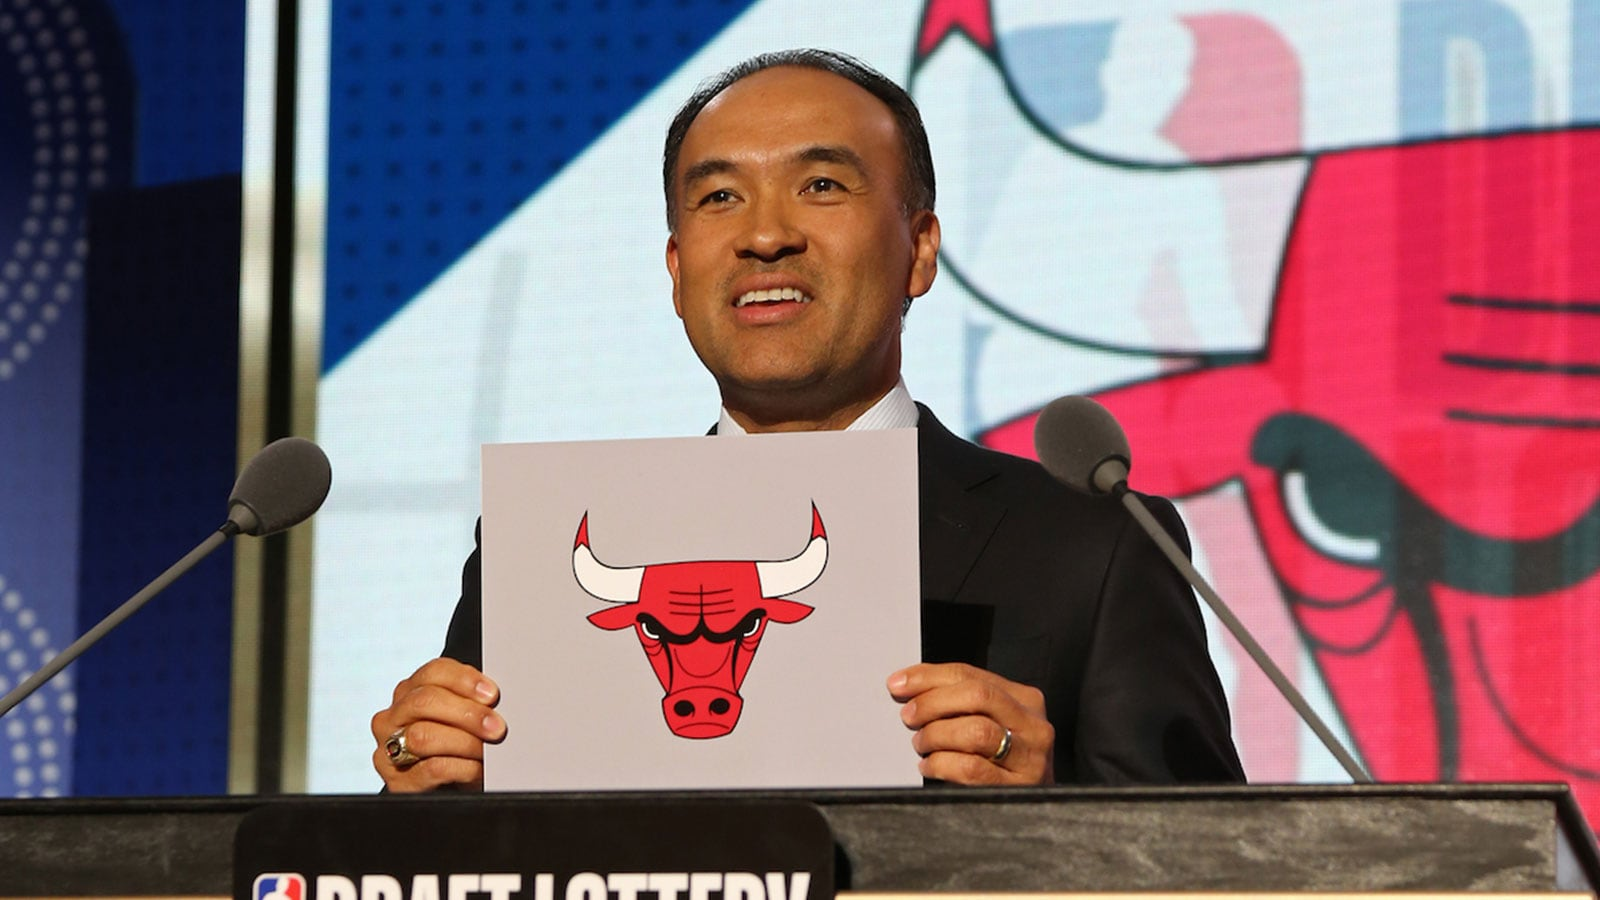 NBA Deputy Commissioner, Mark Tatum awards the Chicago Bulls the number seven pick in the 2018 NBA Draft during the NBA Draft Lottery on May 15, 2018